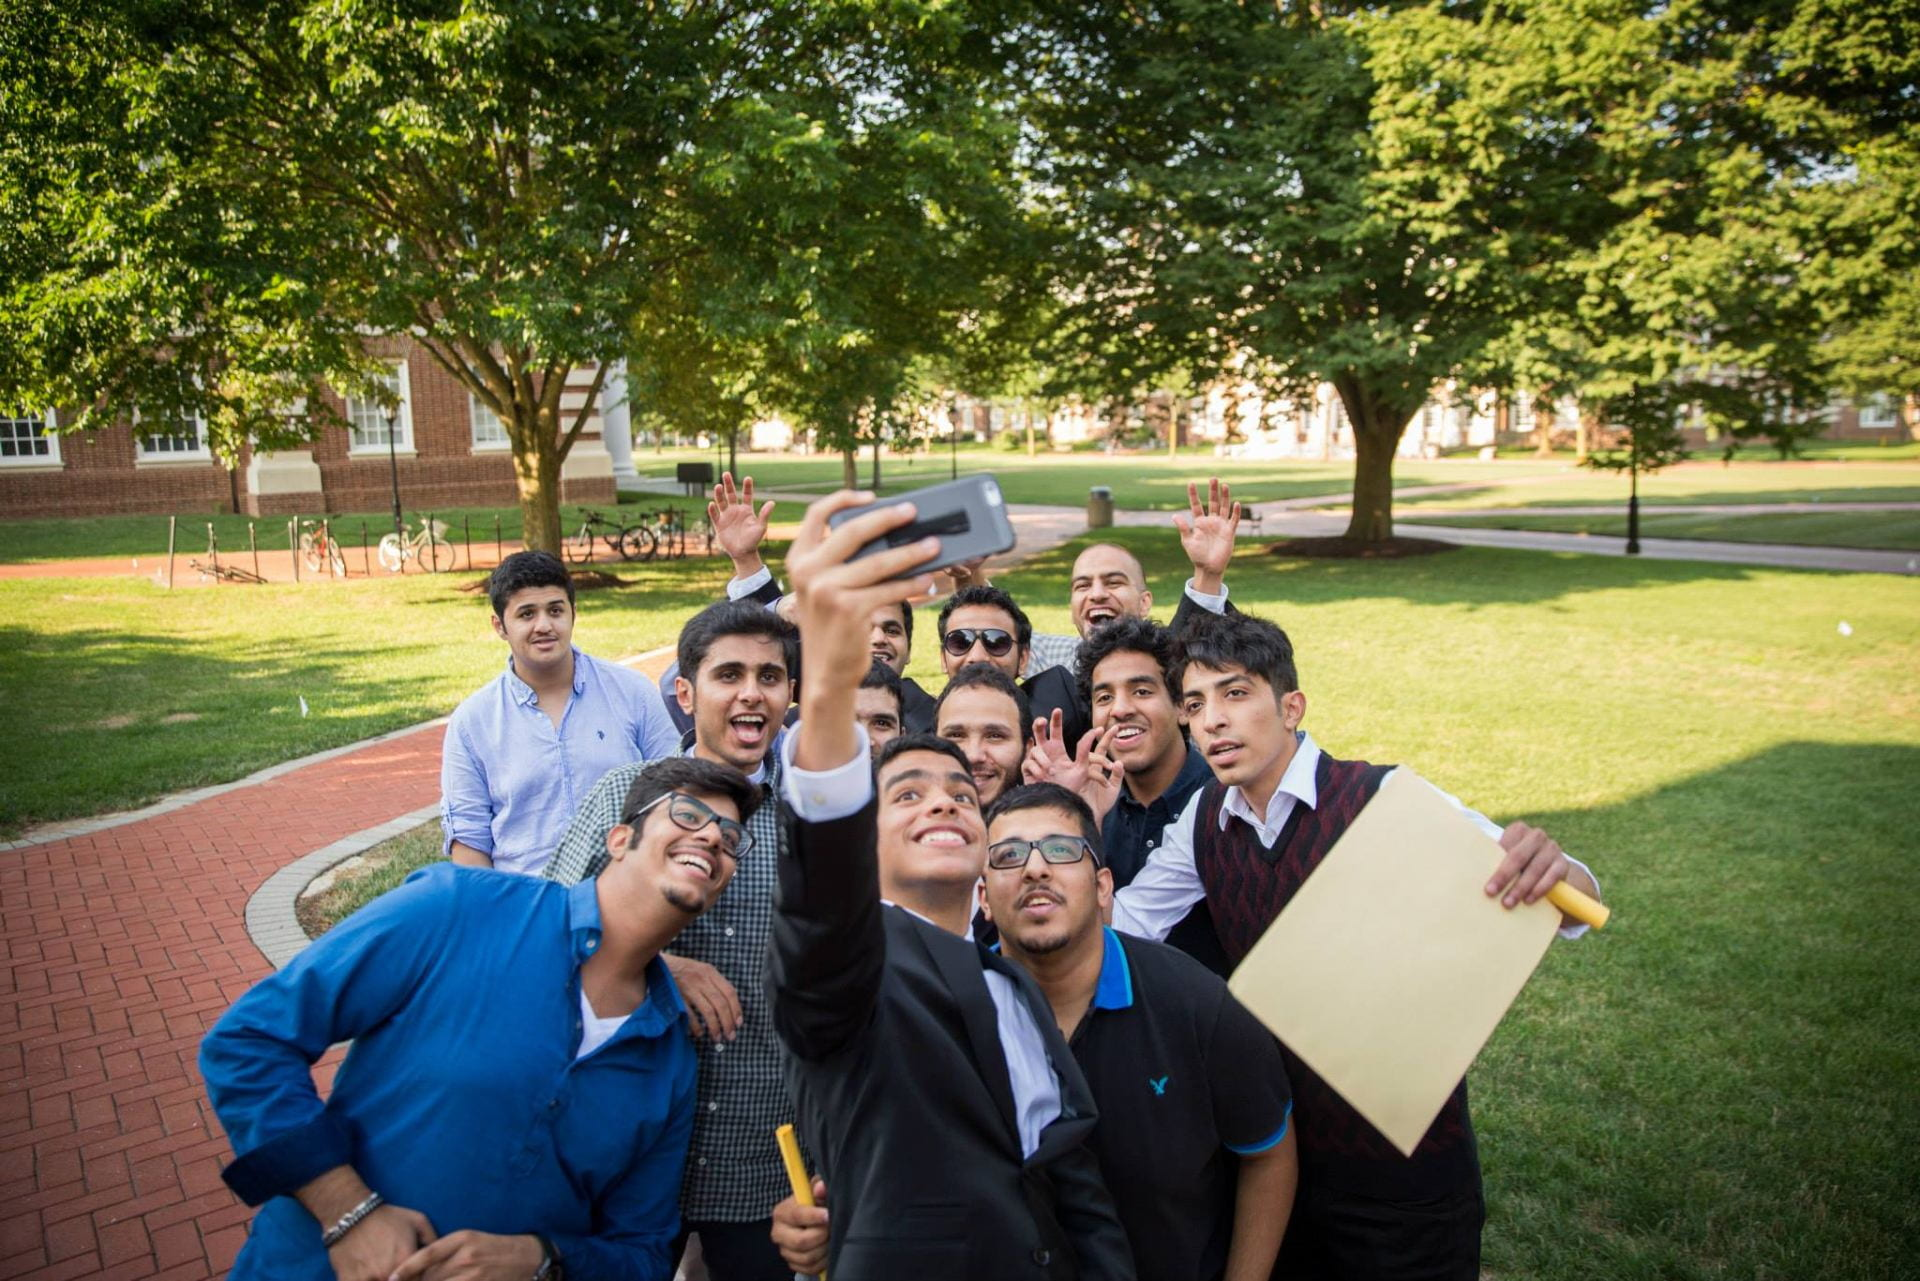 A group of students taking a group selfie after graduation